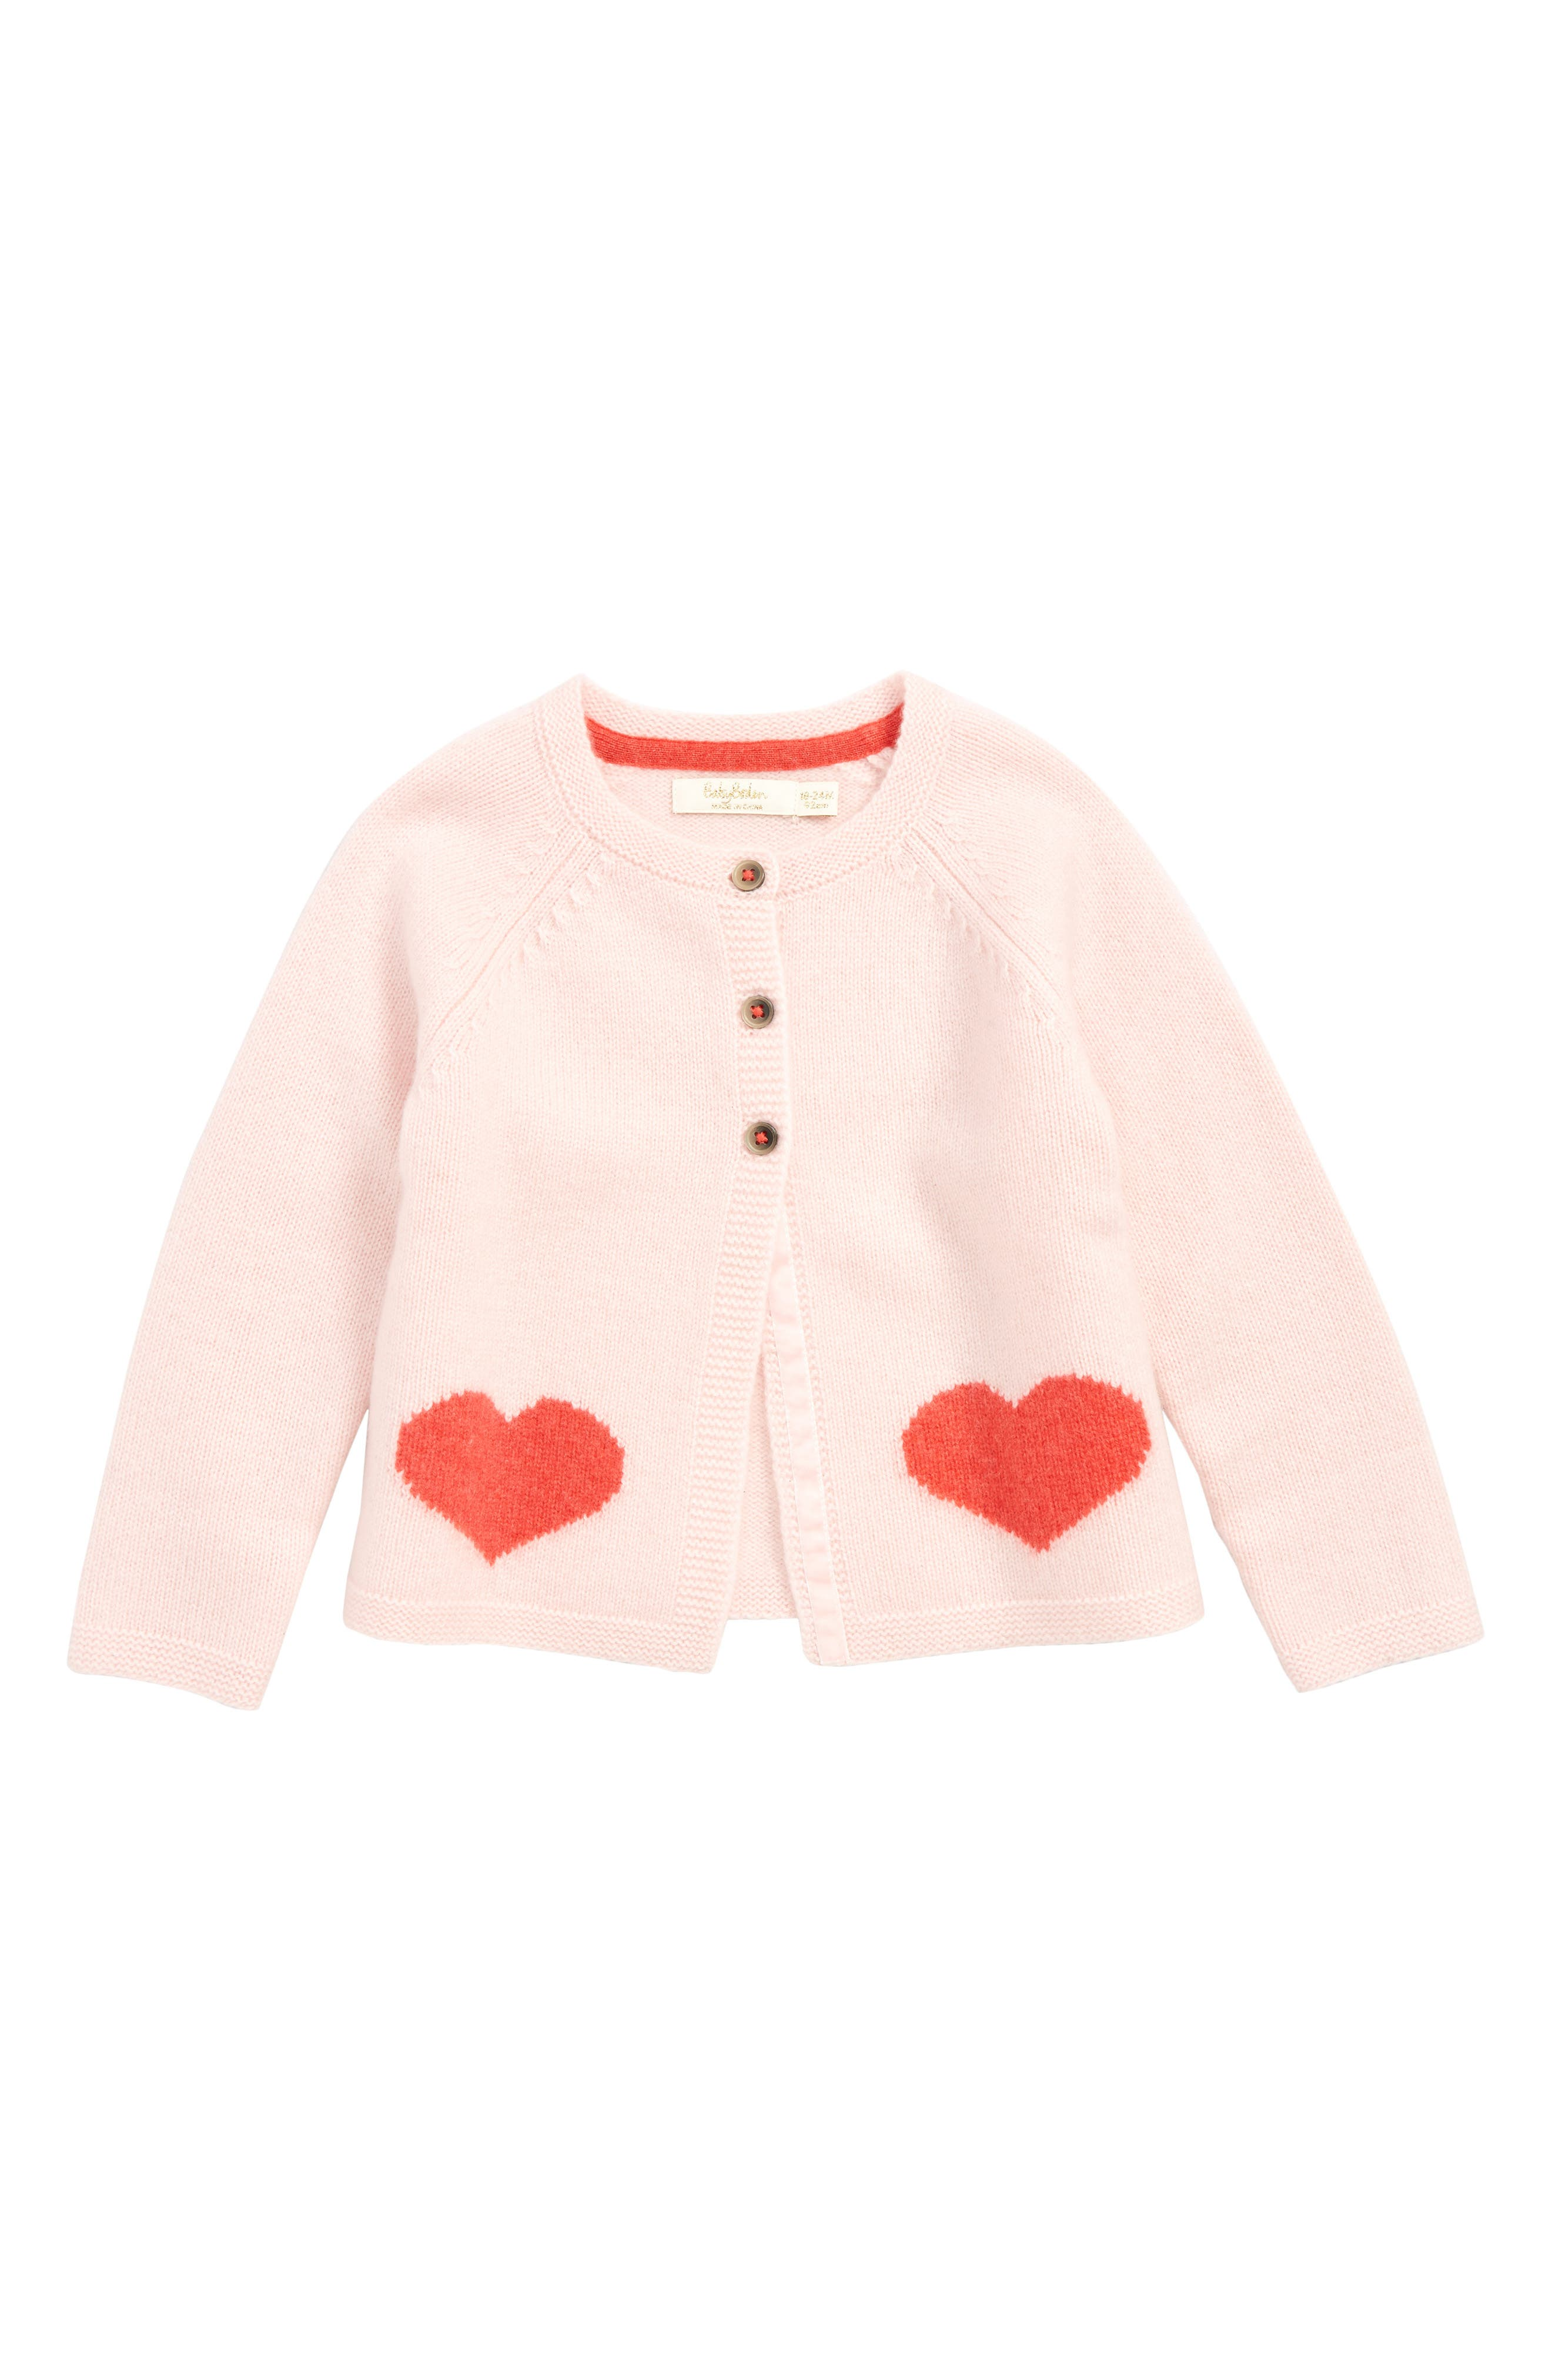 Cashmere Cardigan,                             Main thumbnail 1, color,                             PROVENCE DUSTY PINK HEARTS